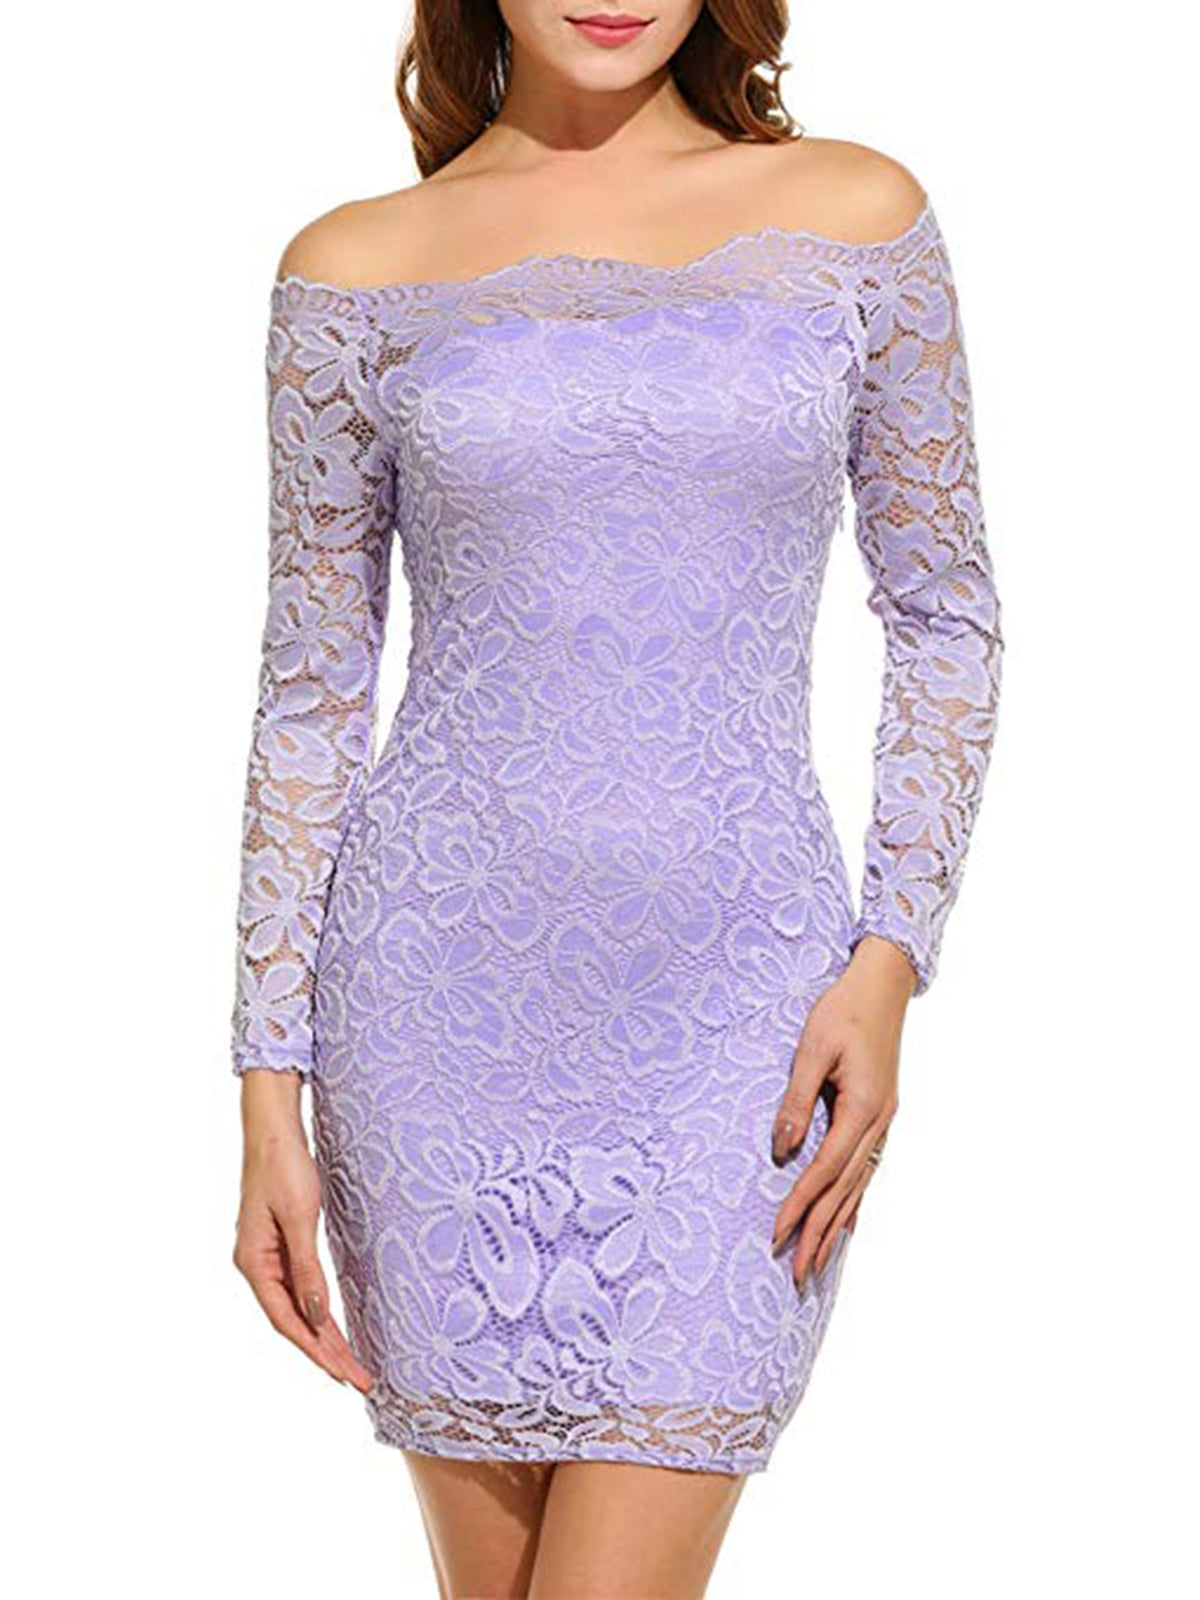 cf9d8b15804c Women s Off Shoulder Lace Dress Long Sleeve Bodycon Cocktail Party Wedding  Dress